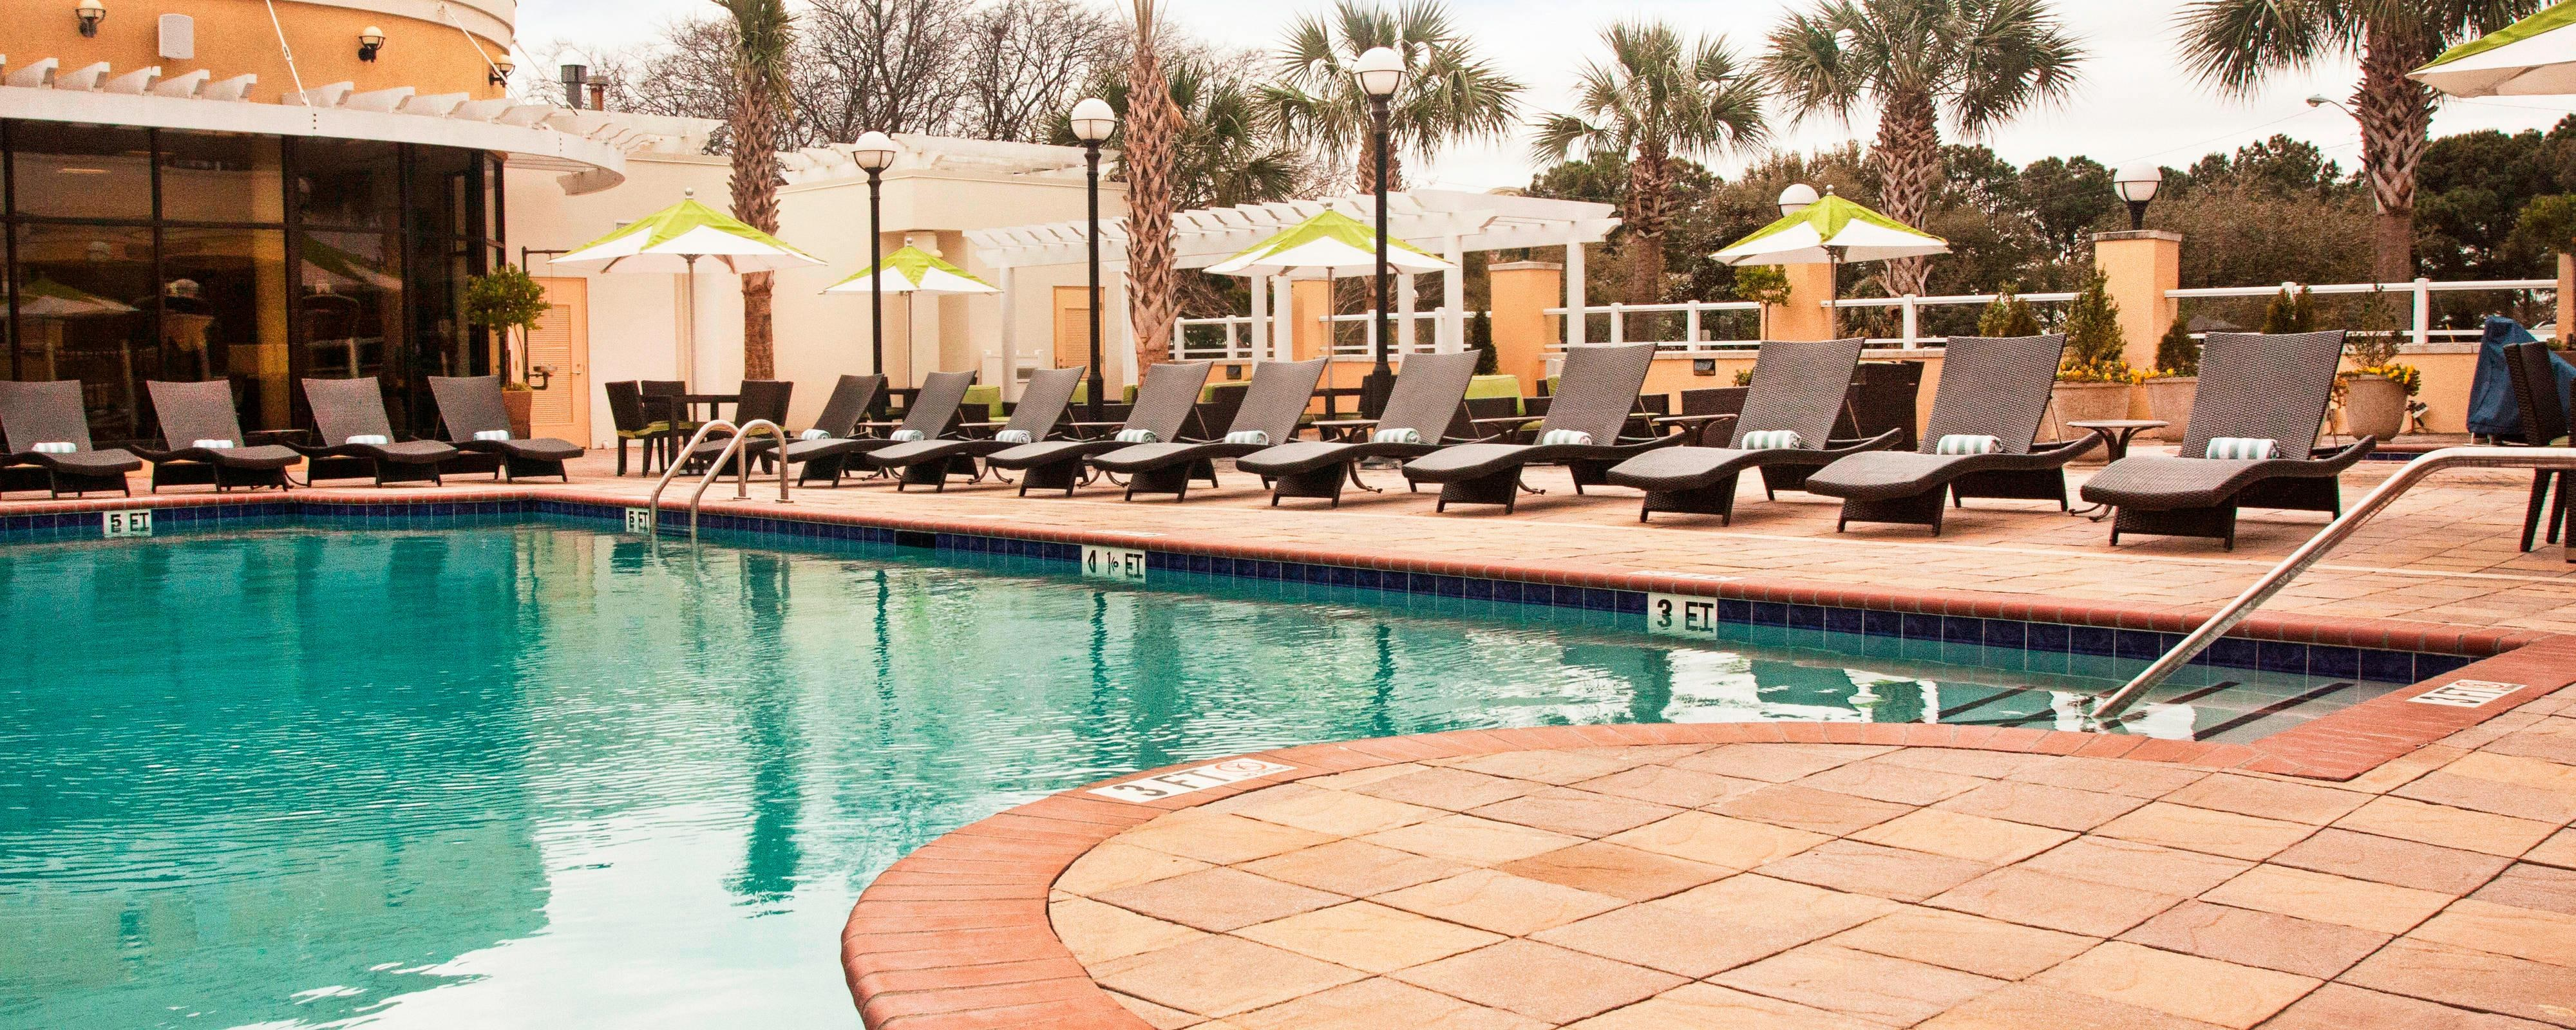 Charleston Hotel Pool & Spa